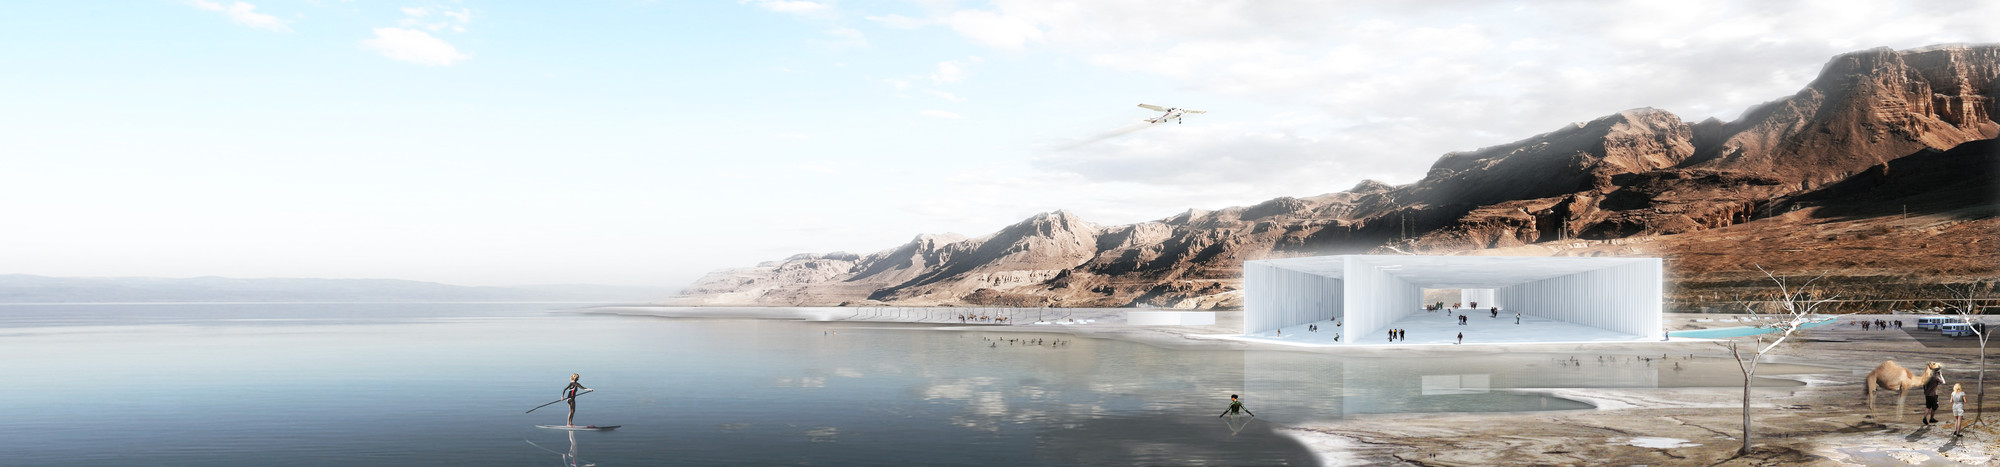 'Cristal – The Dead Sea Gem' Winning Proposal / Sitbon Architectes, Courtesy of Sitbon Architectes